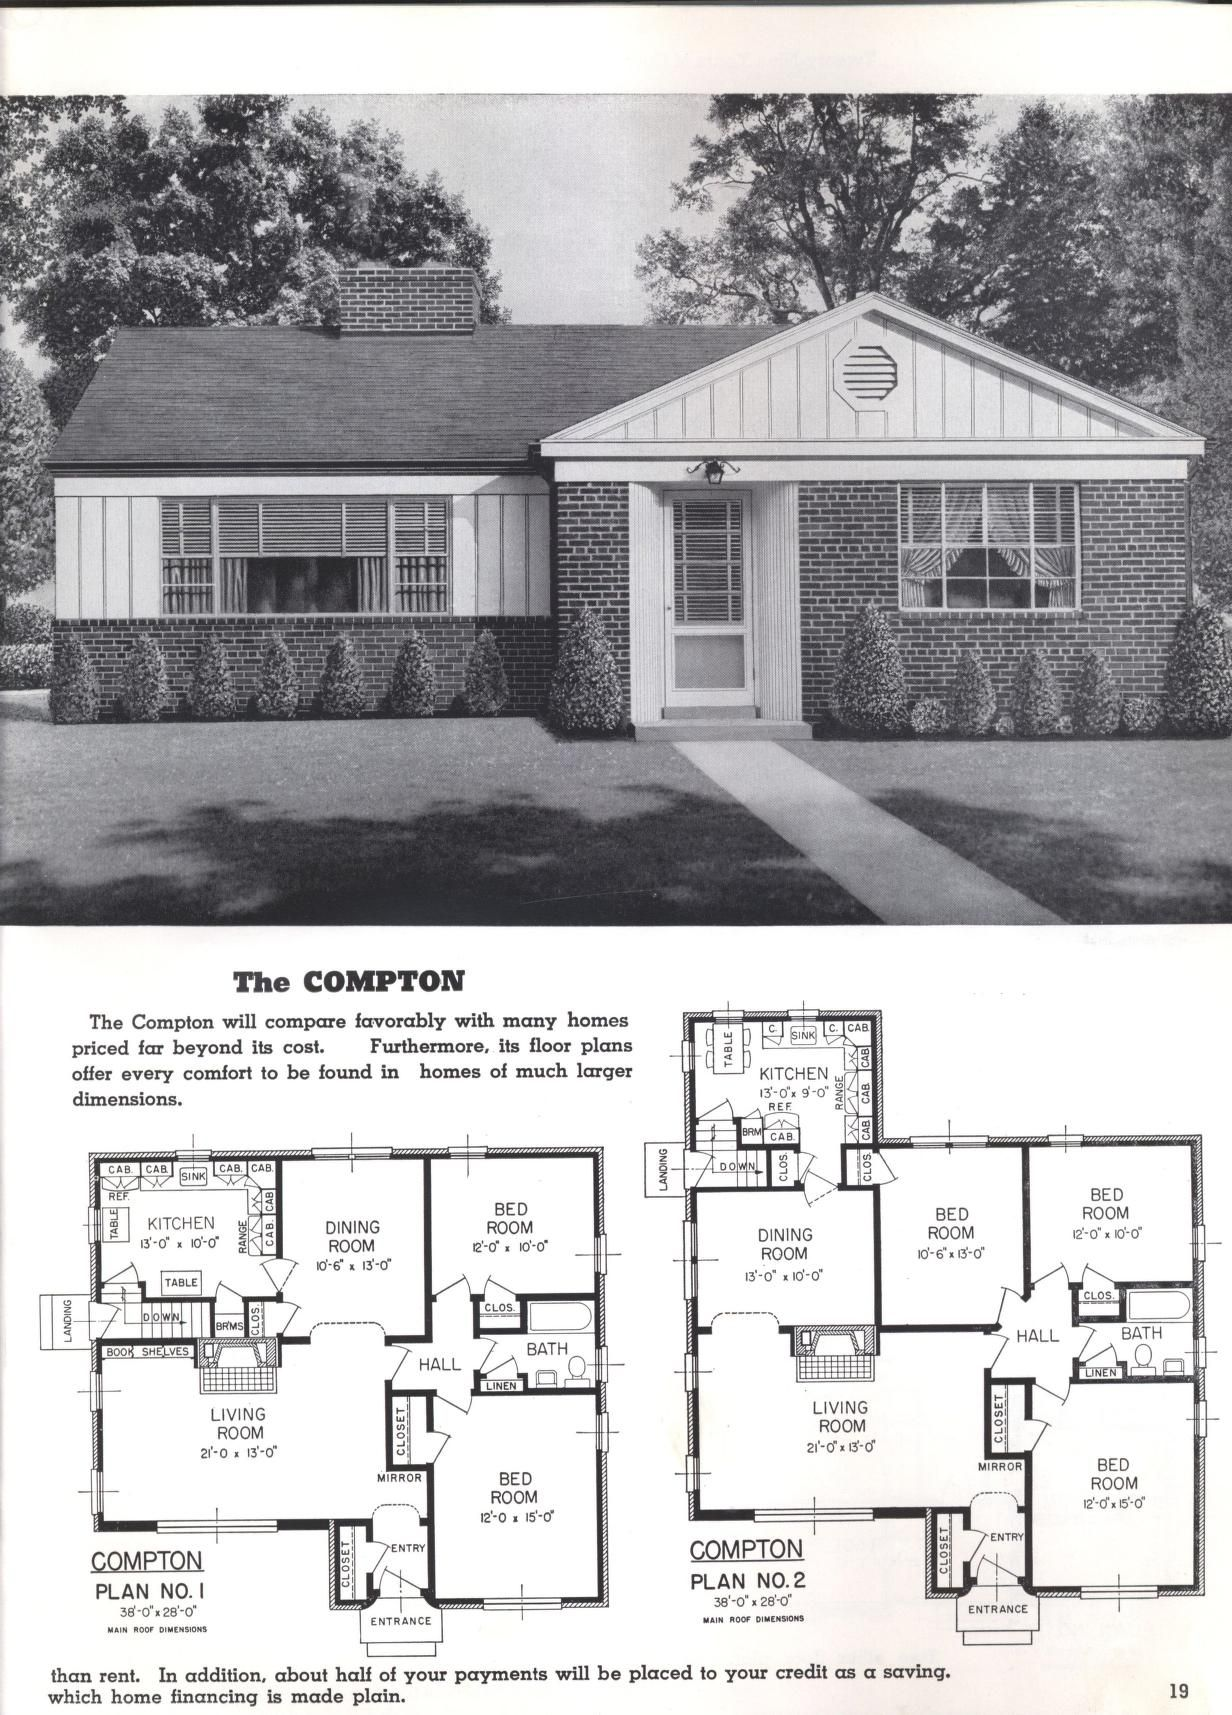 Better Homes At Lower Cost A 50 By Standard Homes Co Publication Date 1950 The Compton Vintage House Plans Bungalow House Plans Better Homes